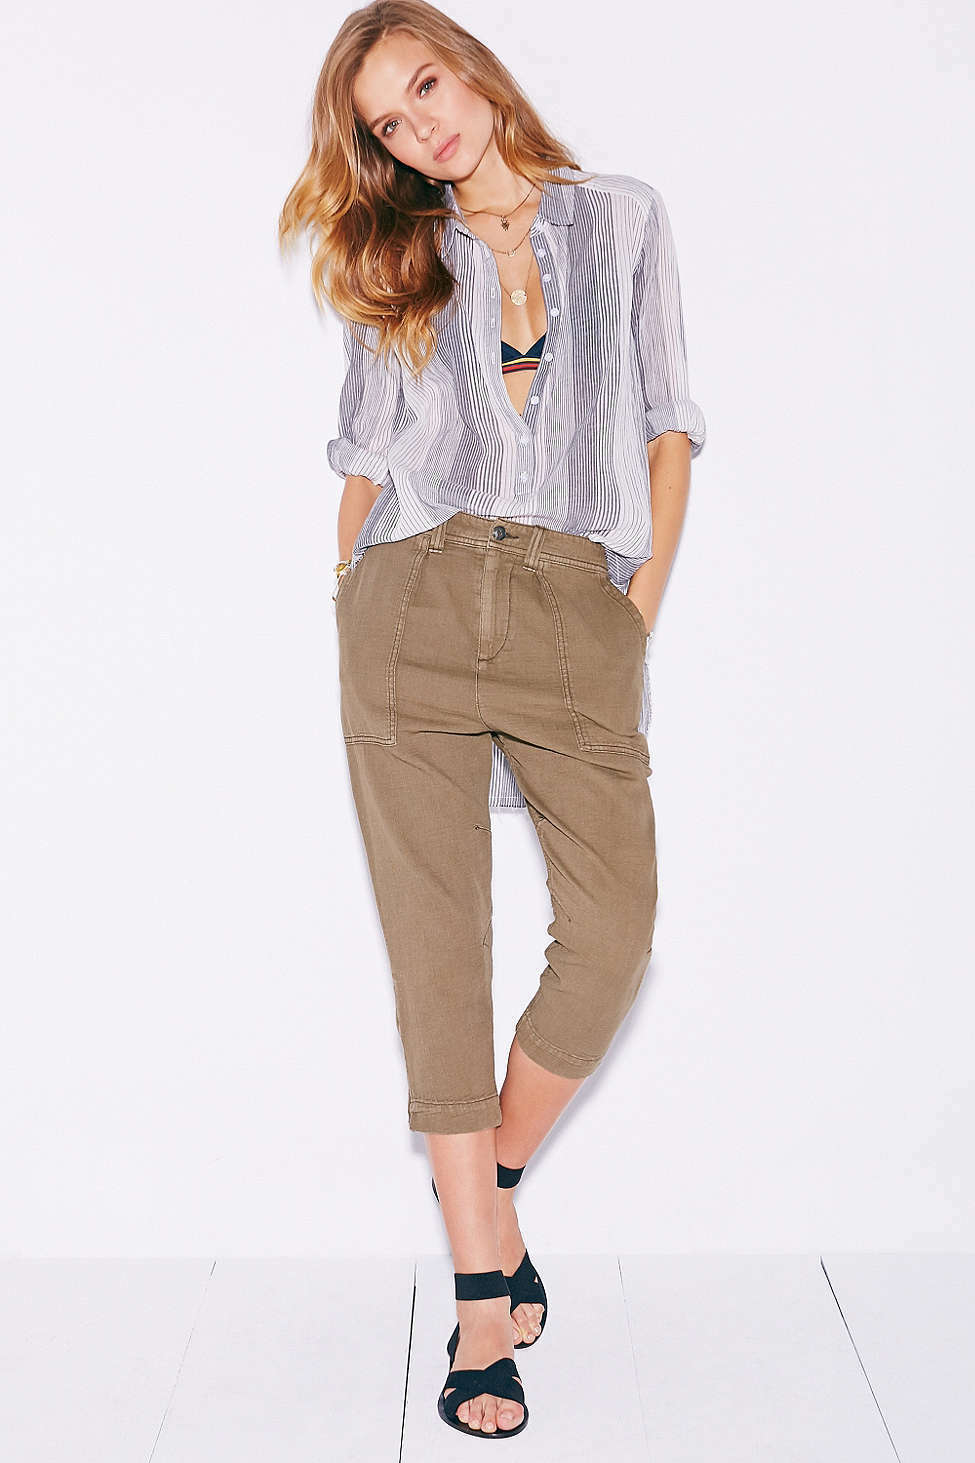 NWT AUTHENTIC Urban Outfitters BDG Pegged Fatigue Pant  Olive Grün  Größe 4